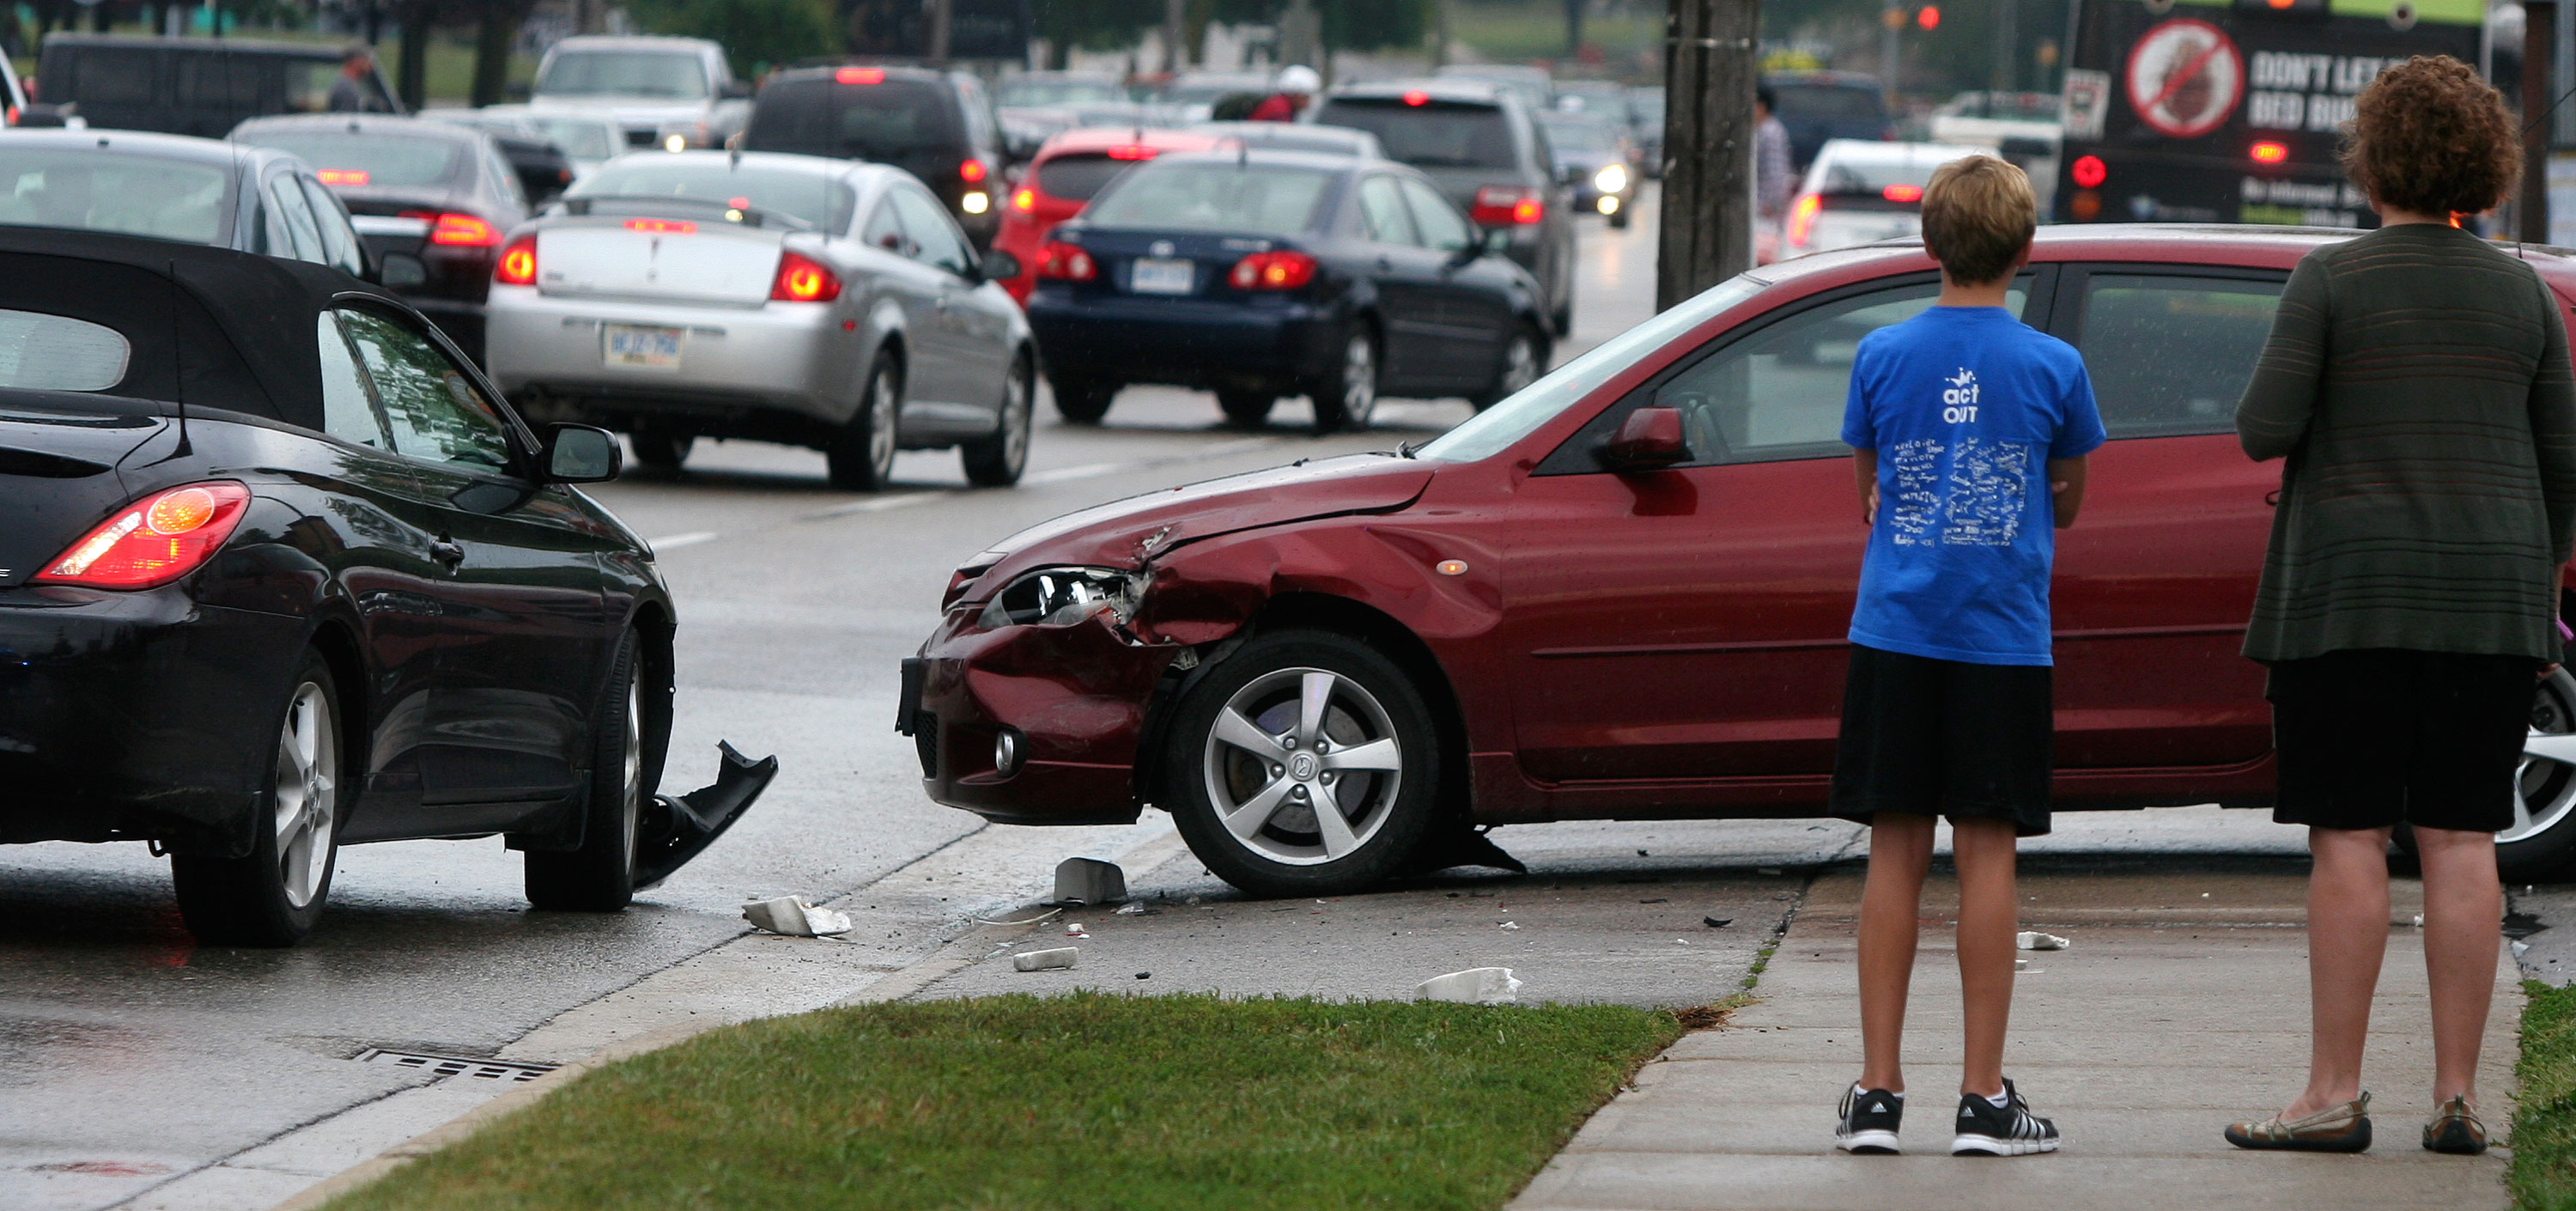 Two cars sustained minor front-end damage in an accident on University Avenue near Weber Street. (Photo by Nick Lachance).